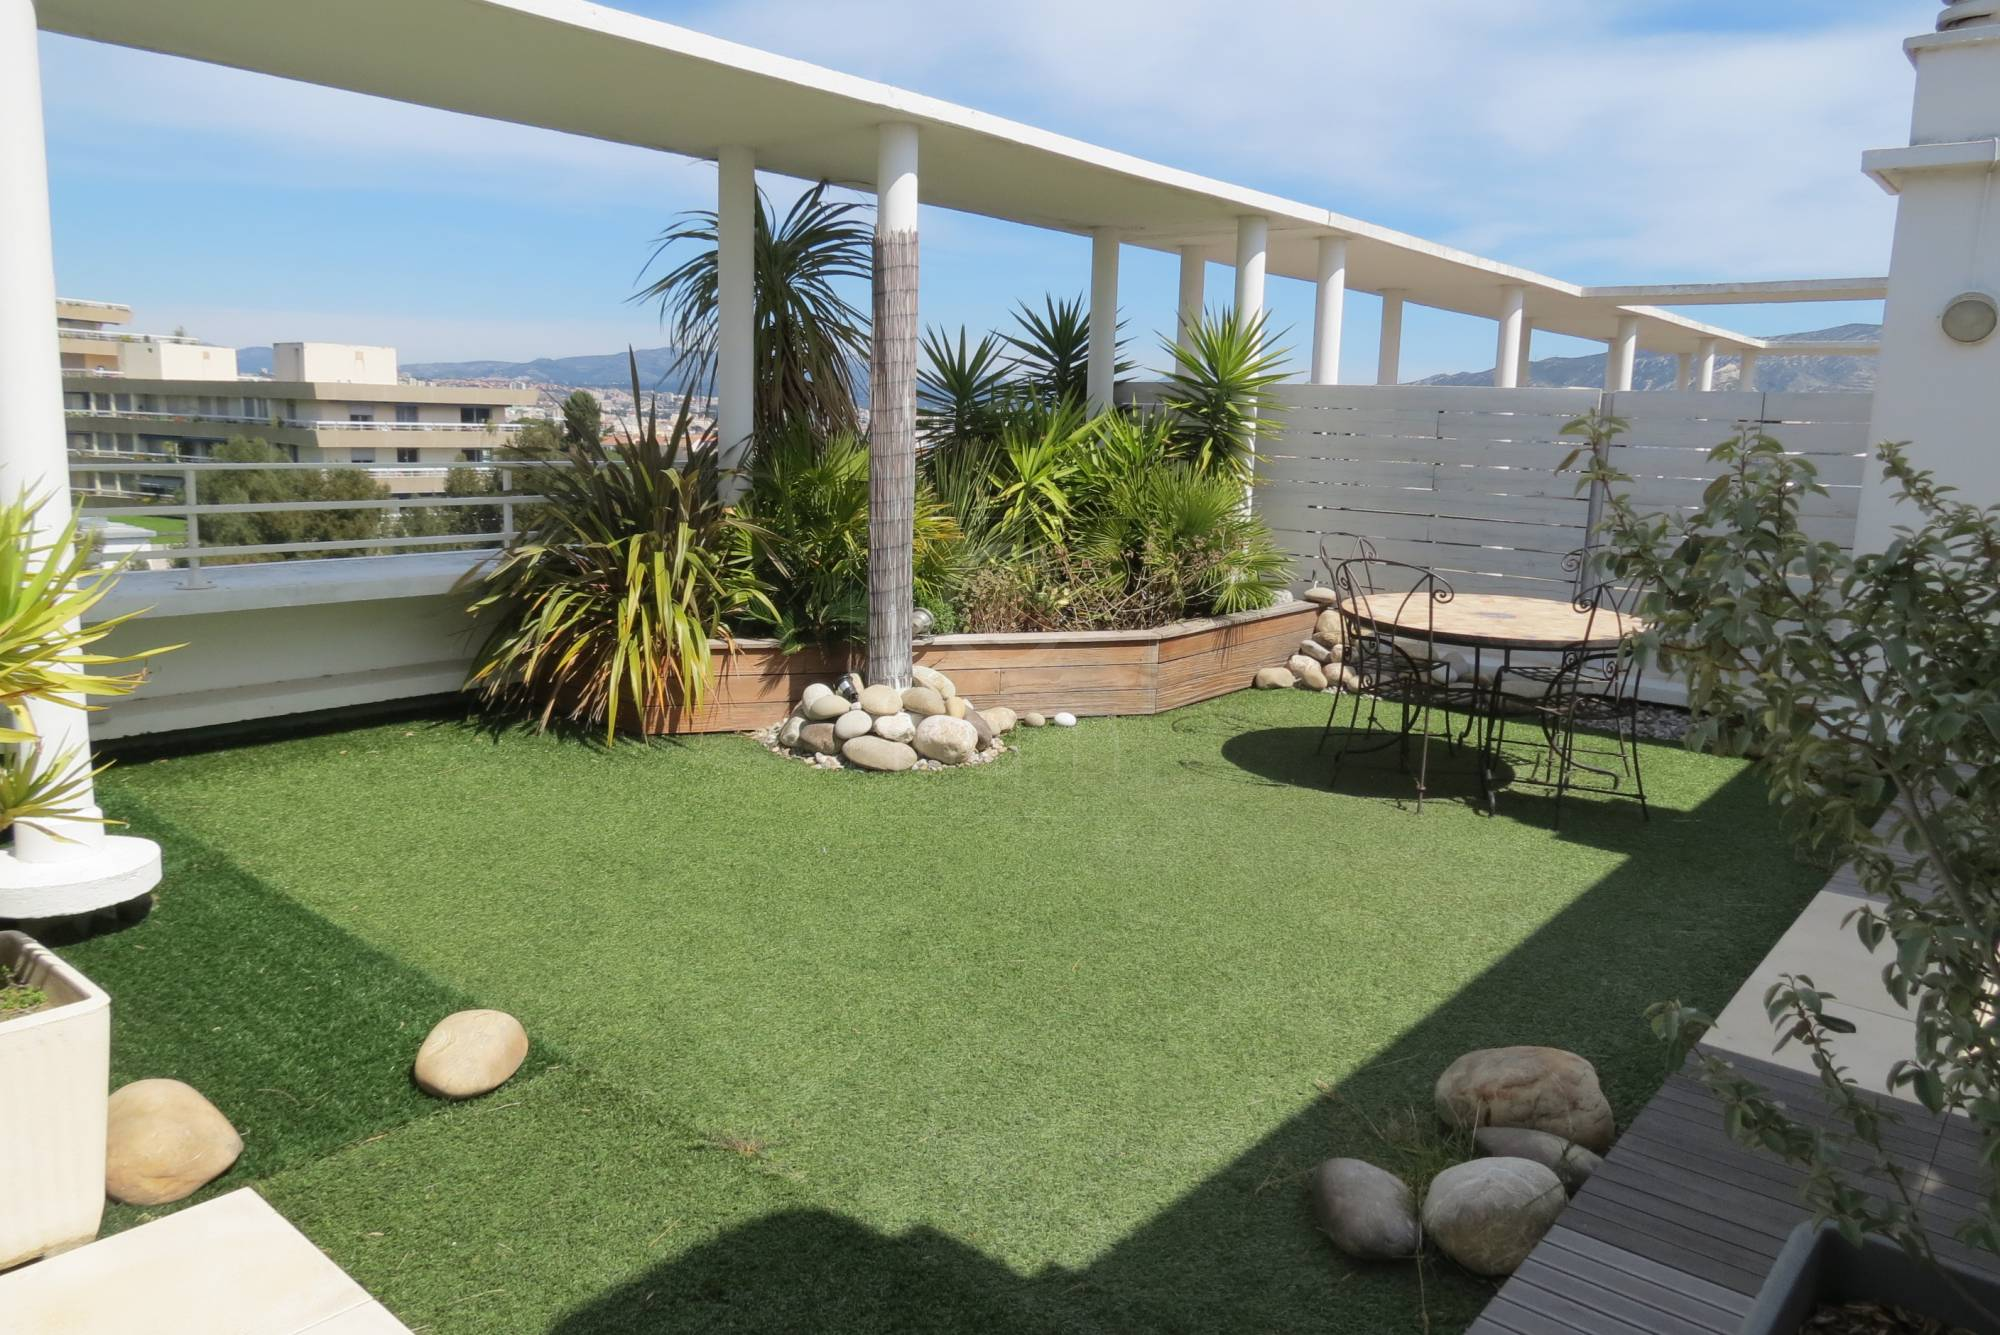 Vente appartement t4 f4 marseille 13008 cdt rolland toit for Location appartement marseille terrasse